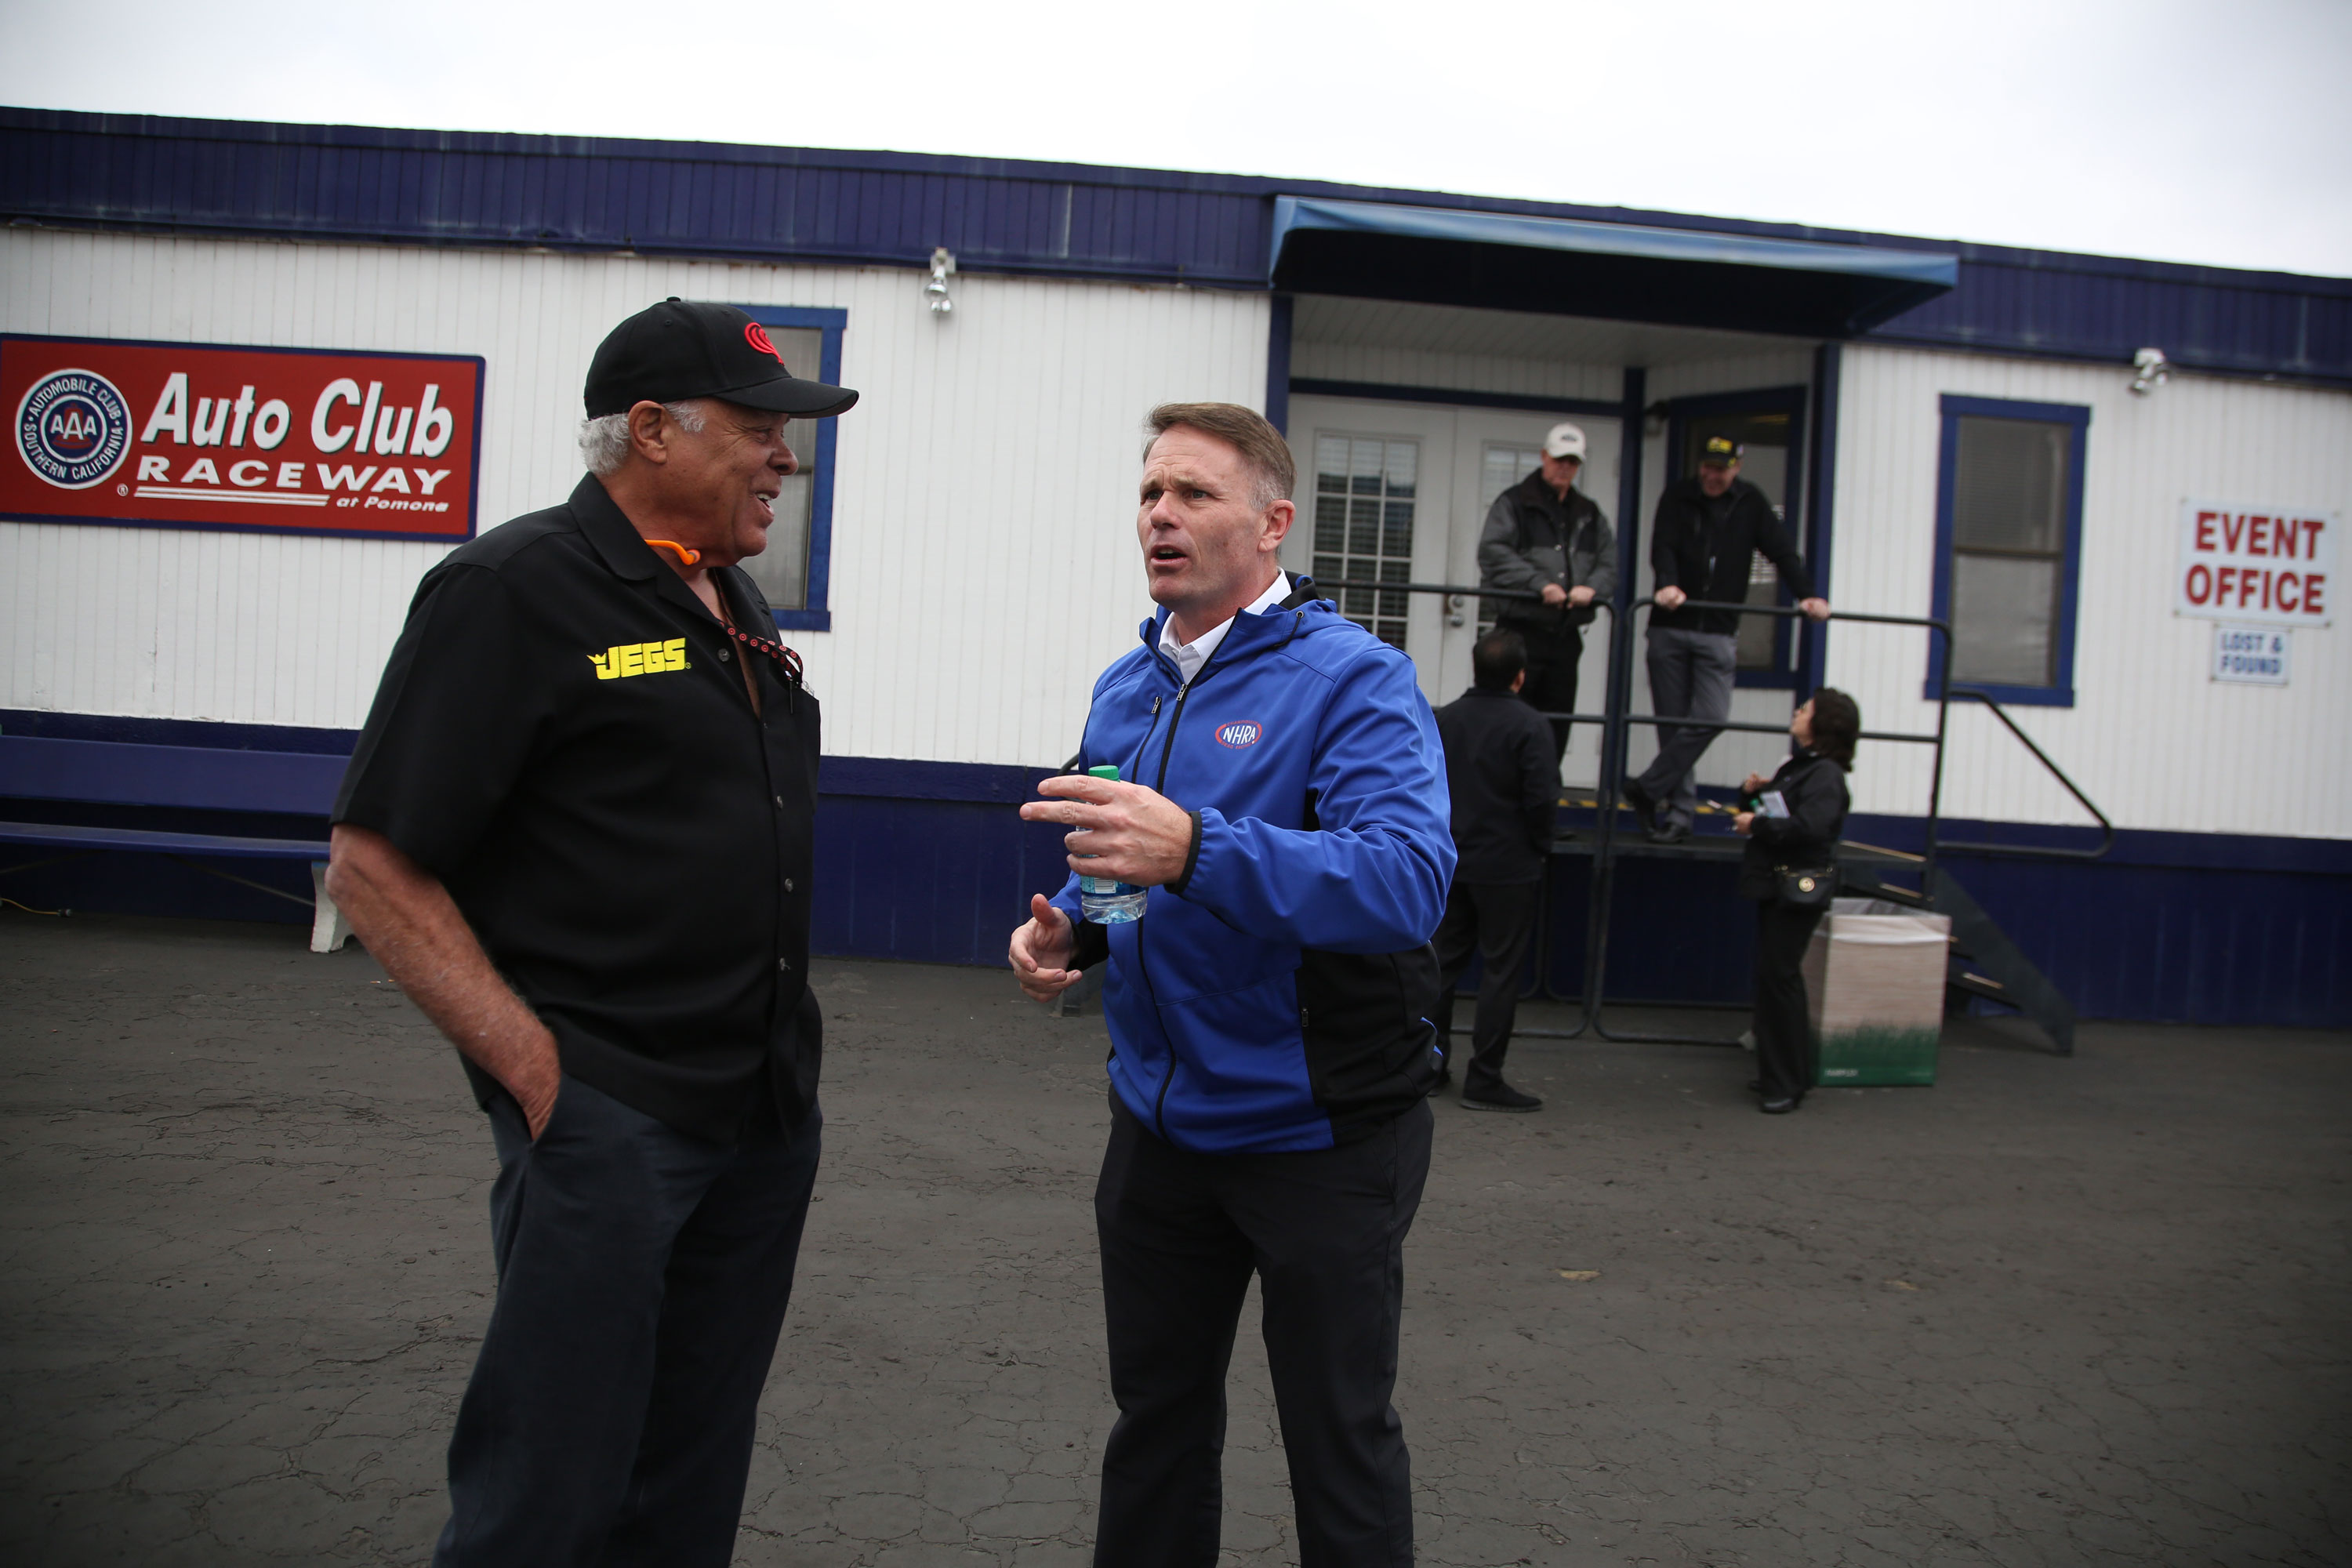 """Prudhomme jokes with NHRA president Glen Cromwell--who greeted Prudhomme by holding out his wallet and saying, """"Just take it,"""" a reference to Prudhomme's complaints about the payscale for race appearances. """"Hey man, I got car payments,"""" answered Snake."""